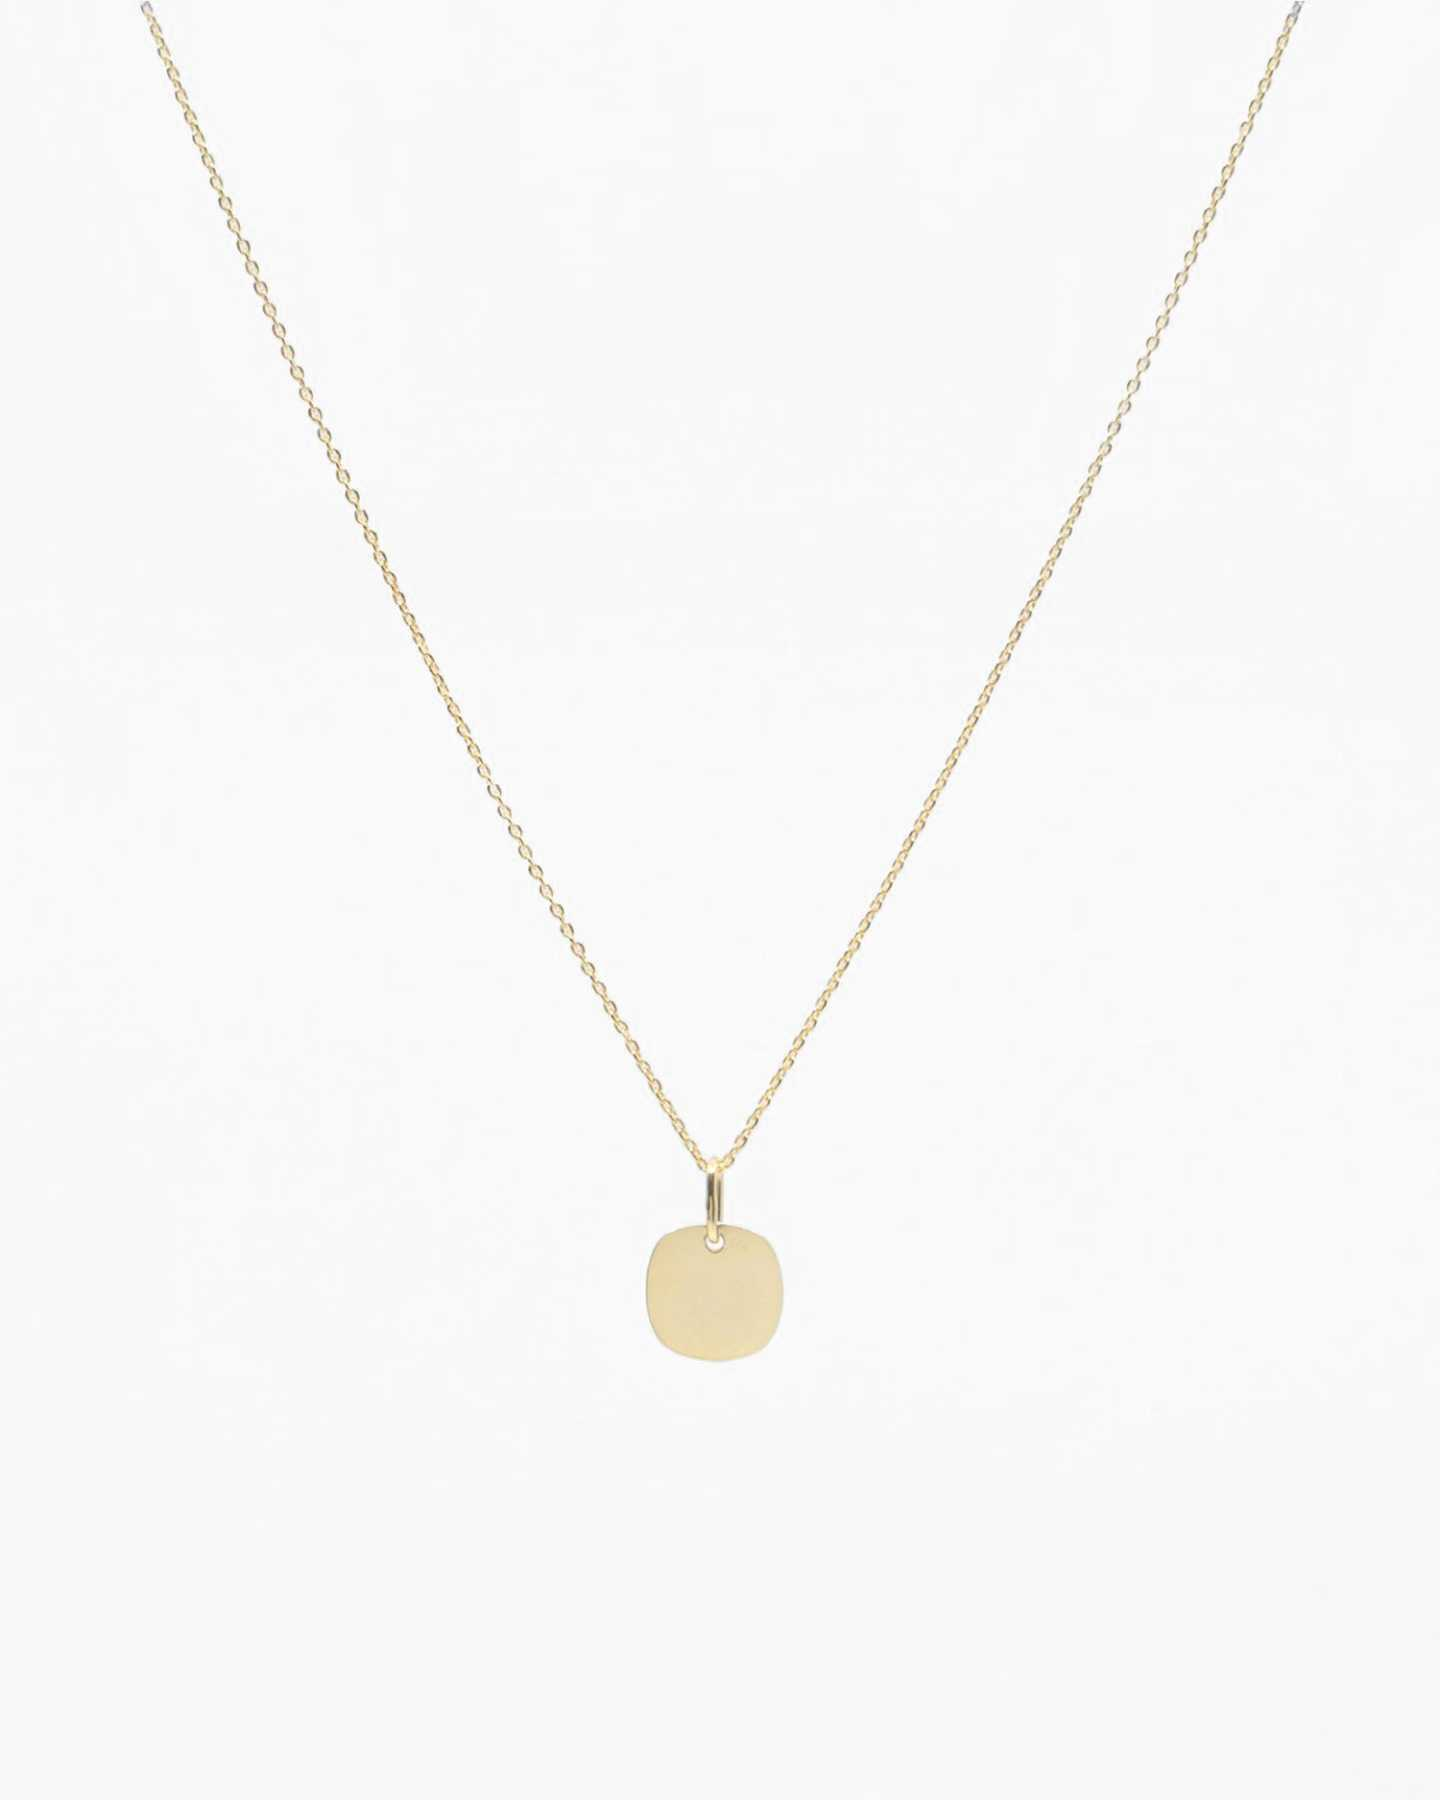 Gold Disc Necklace - Gold Vermeil - 0